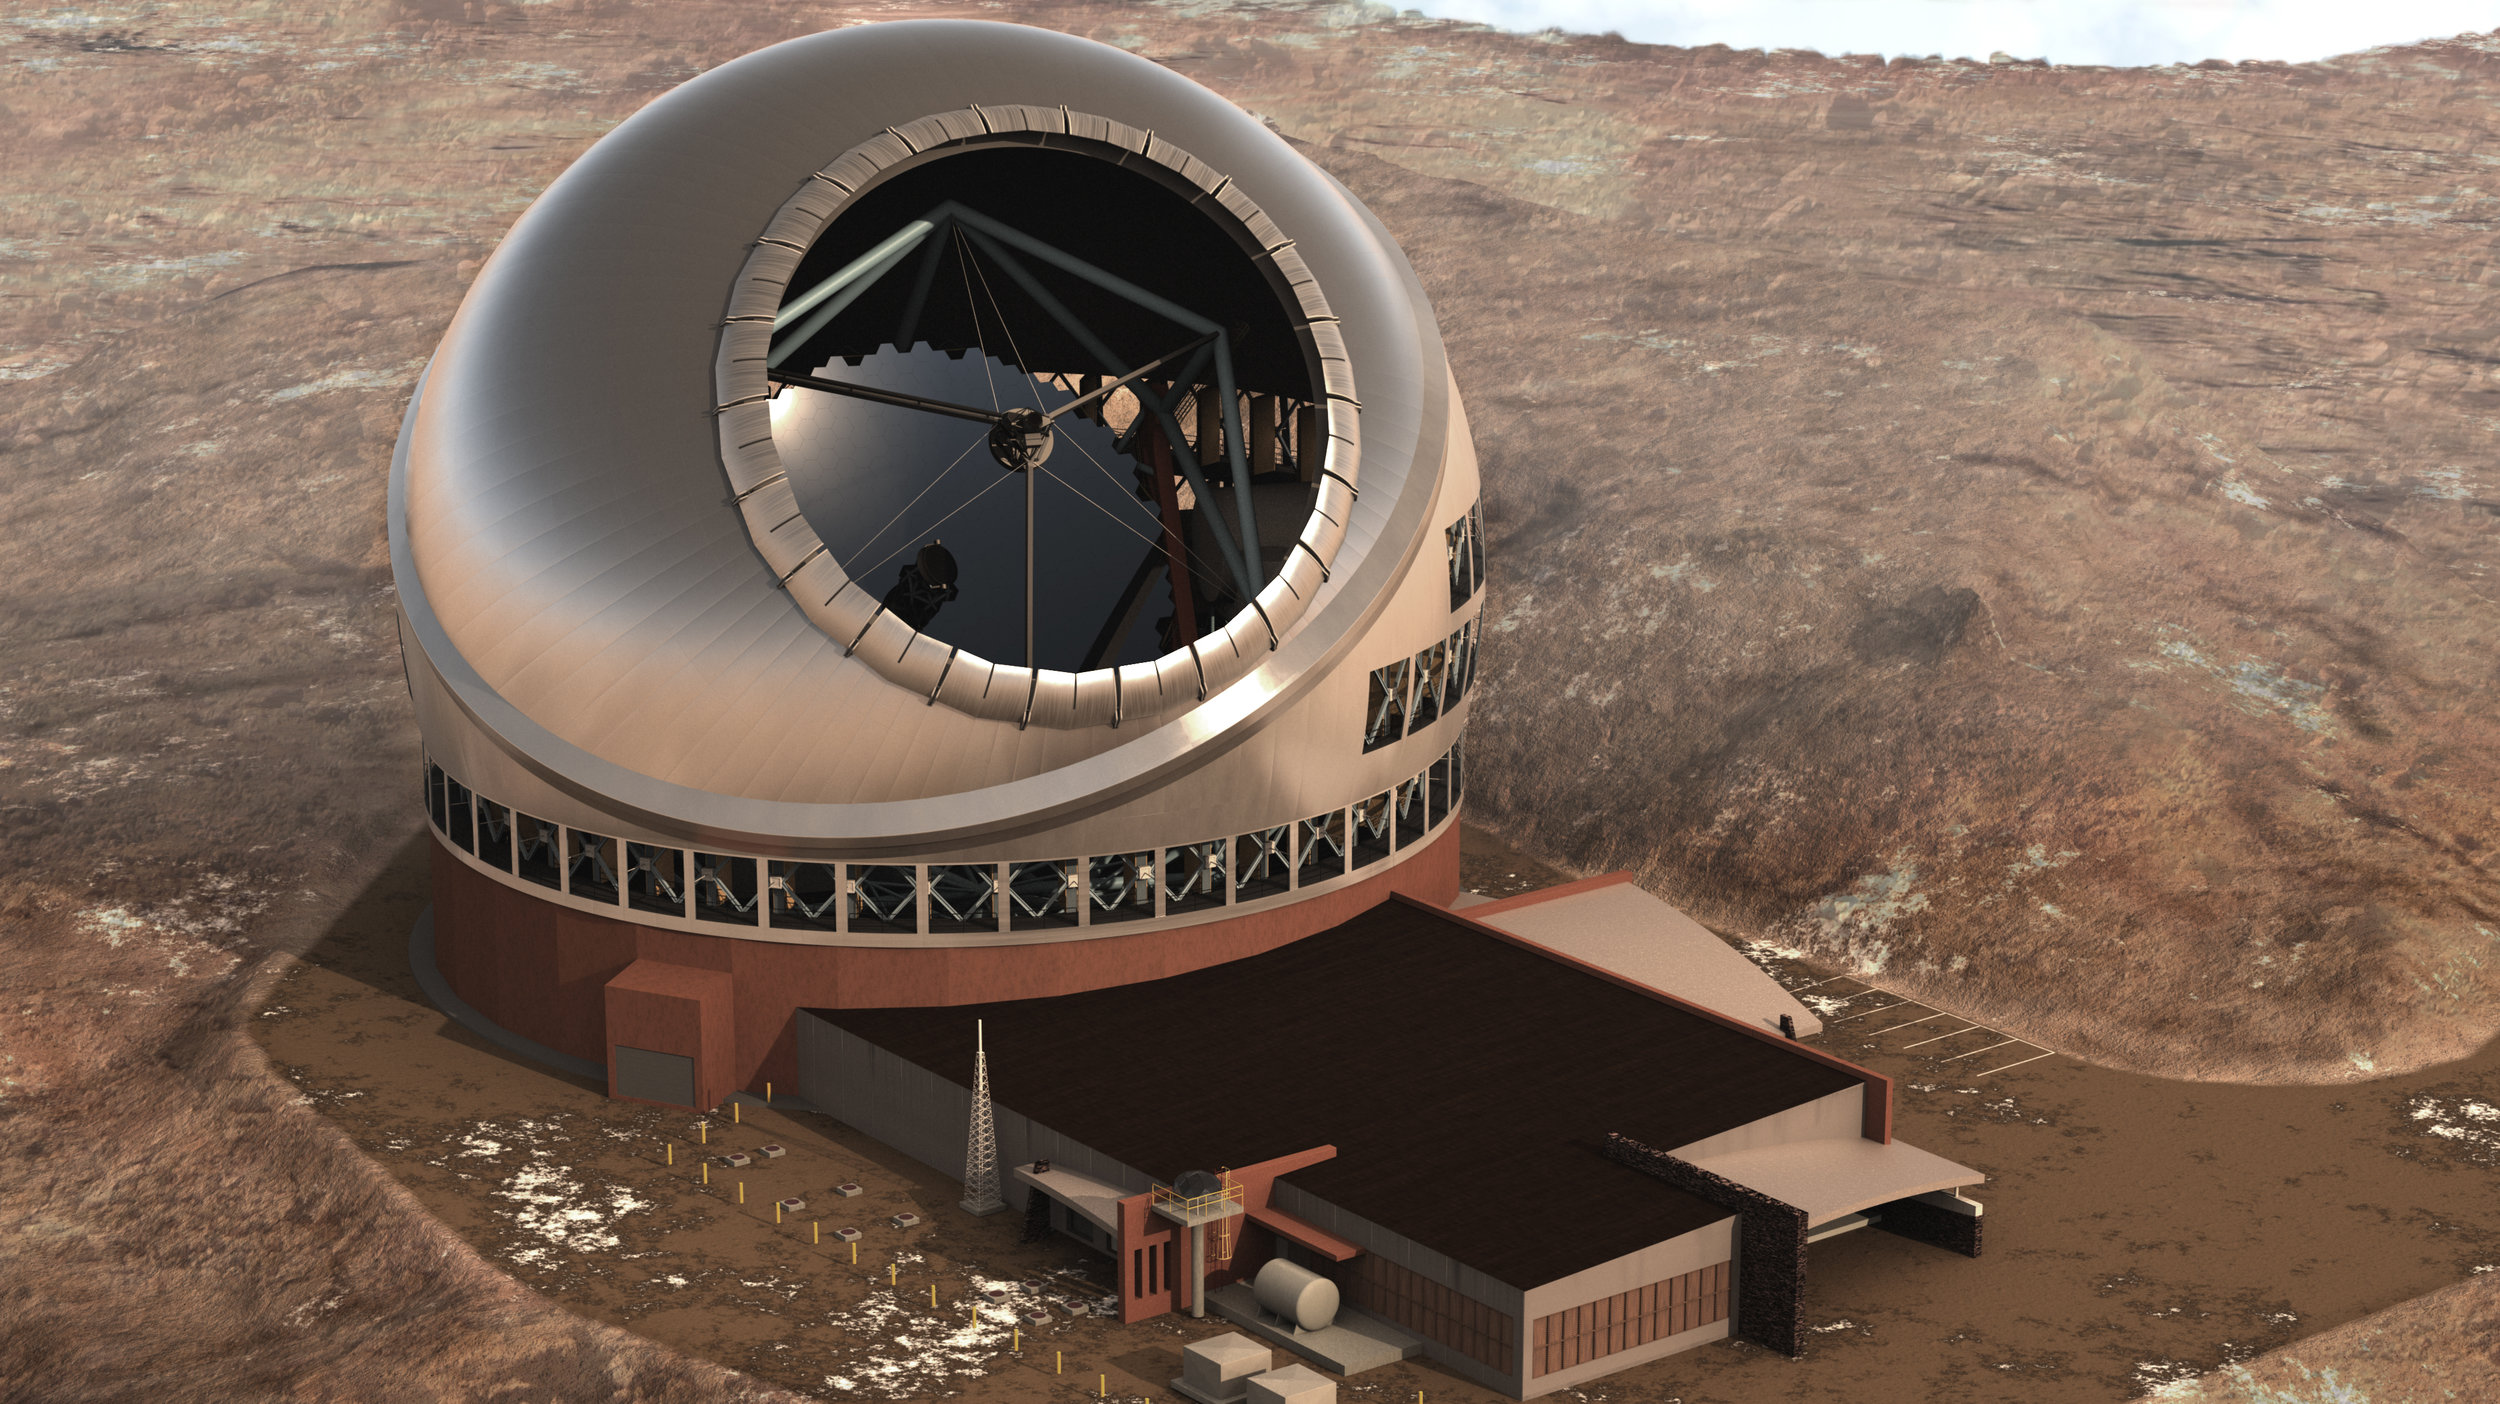 Dr. Fengchuan Liu talks to us about an international project, the  Thirty Meter Telescope  (TMT). He describes the telescope, it's many mirrors, and how he helps manage such a complex project.  Image credit: TMT Observatory Corporation